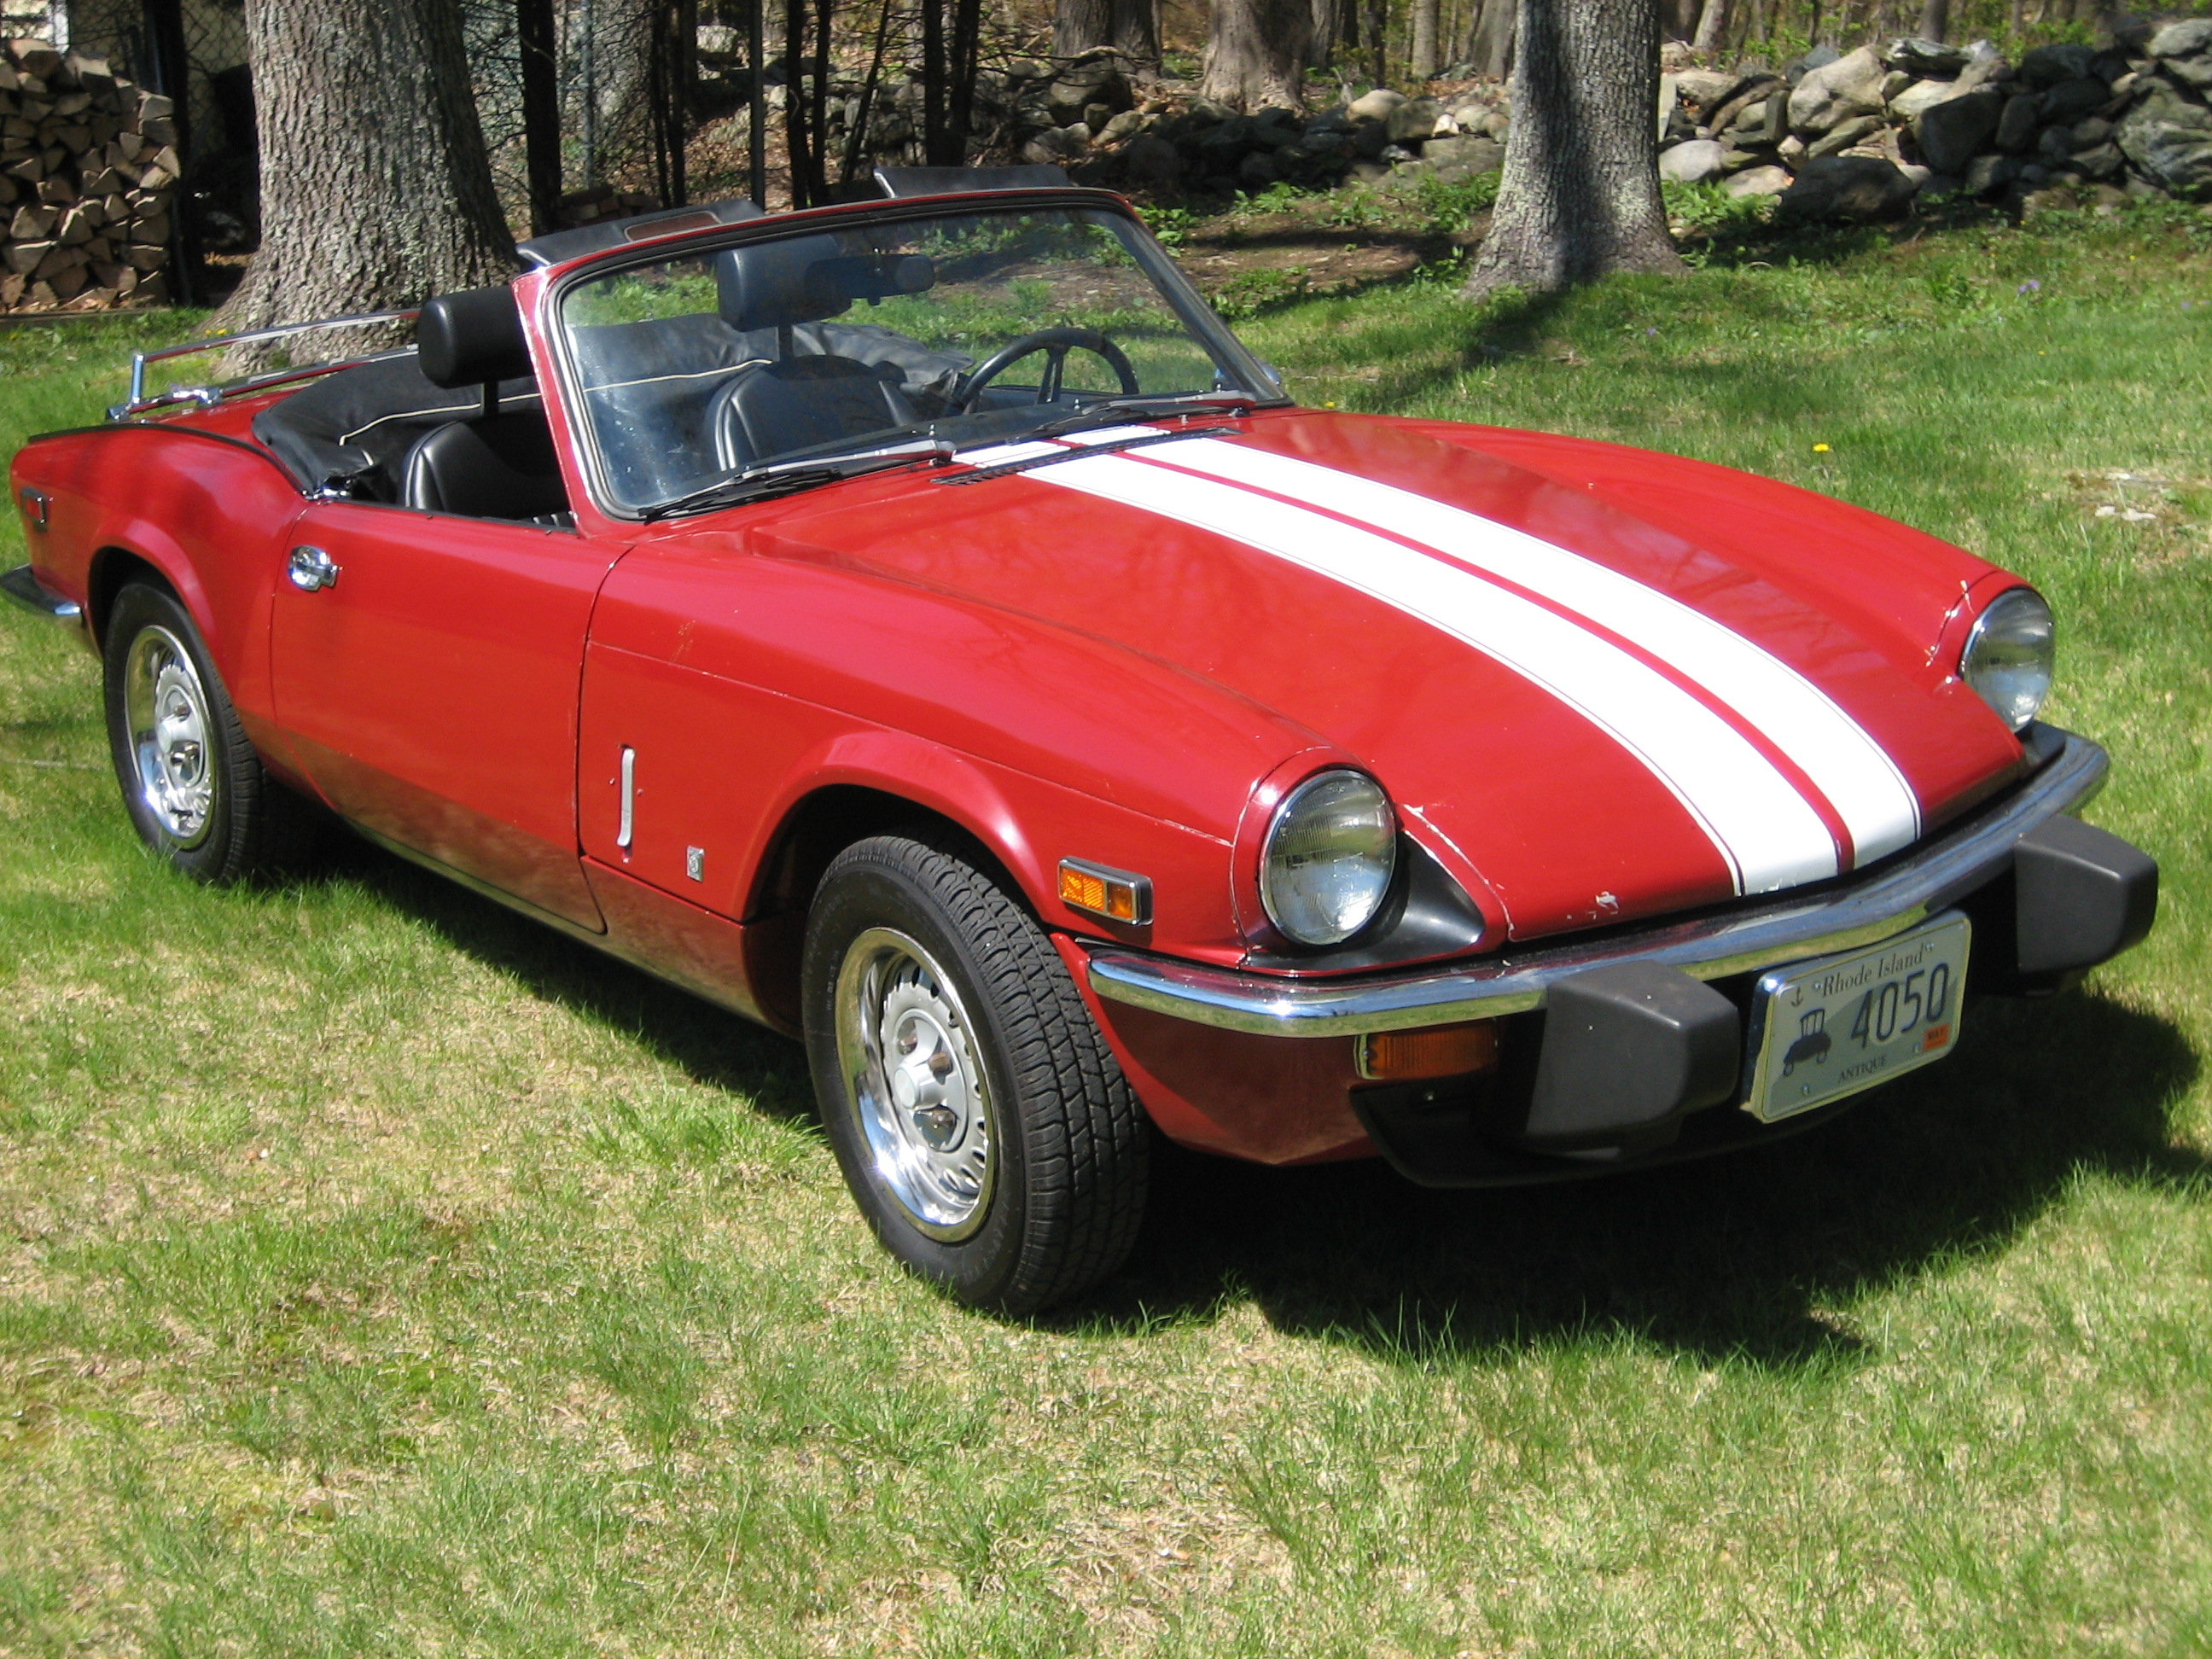 rhodyspit75 39 s triumph spitfire readers rides. Black Bedroom Furniture Sets. Home Design Ideas